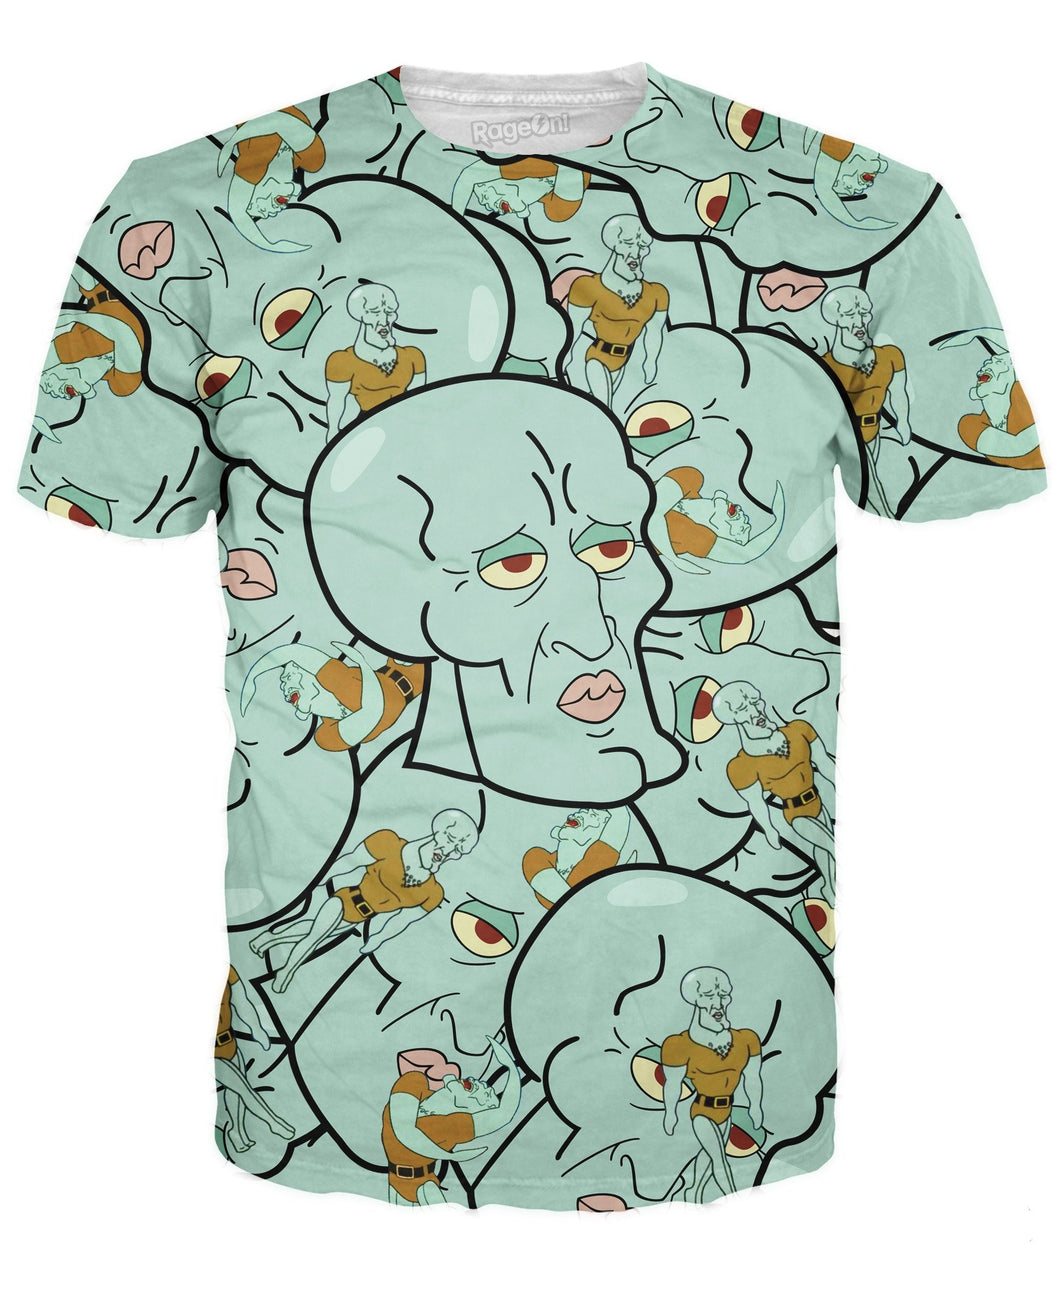 Handsome Squidward T-Shirt - Beelat Sydney